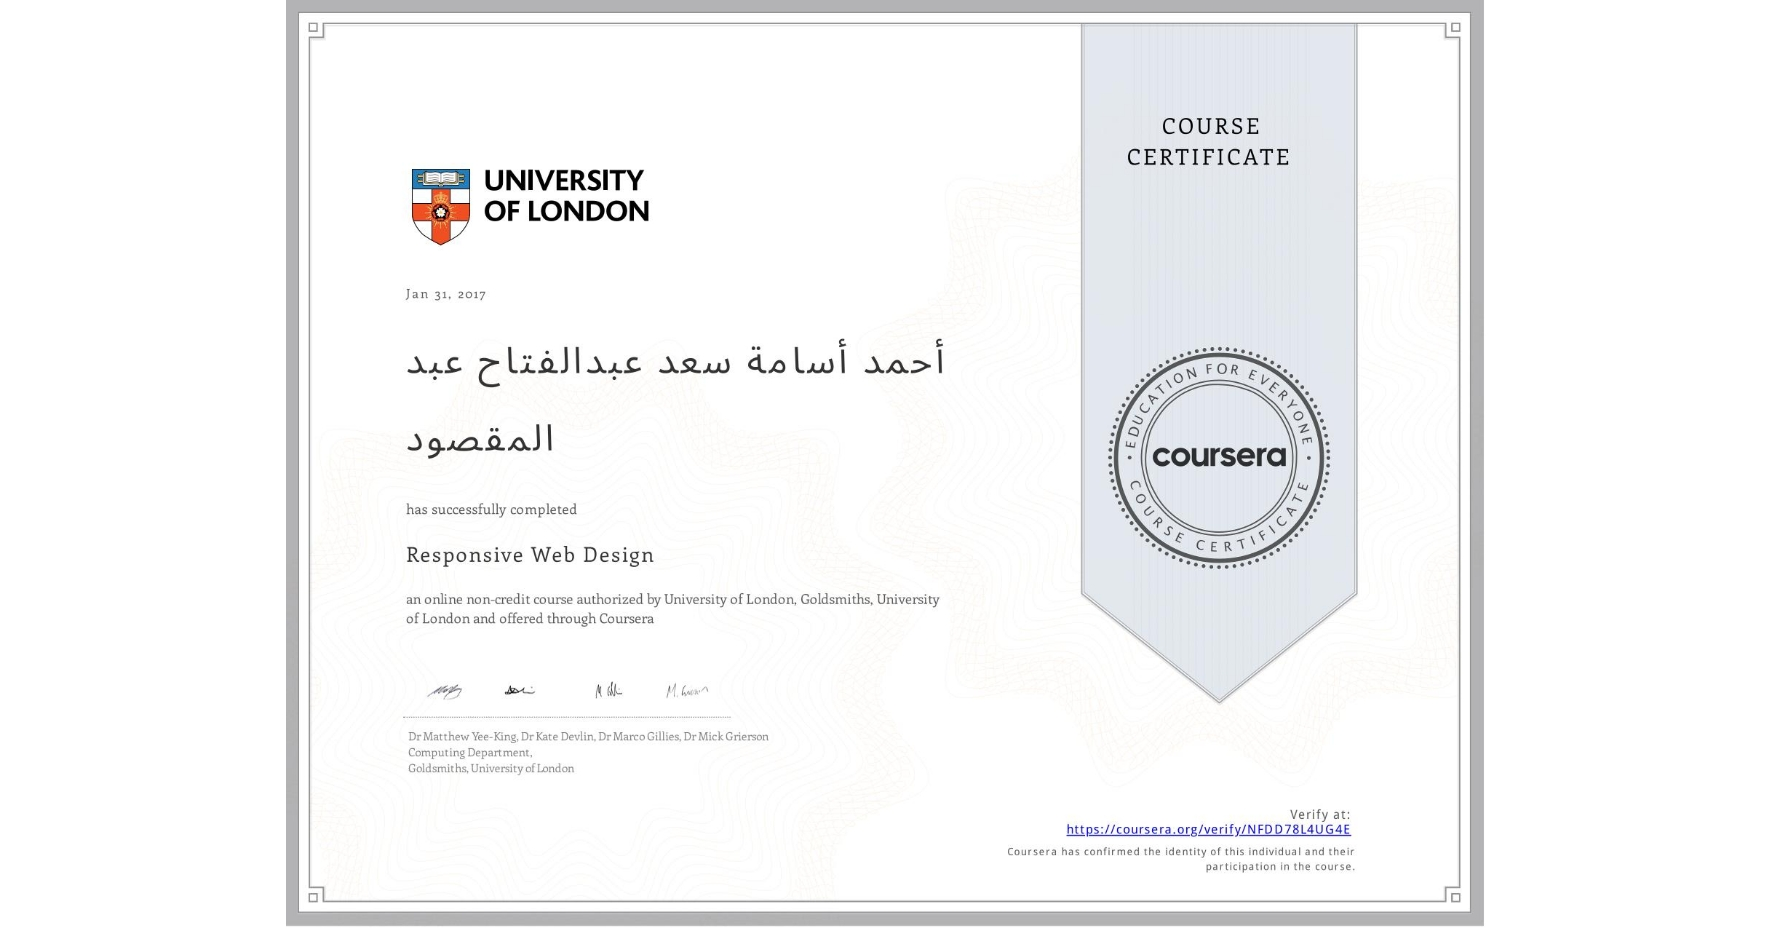 View certificate for Ahmad Osama Saad Abdel fatah, Responsive Web Design, an online non-credit course authorized by University of London & Goldsmiths, University of London and offered through Coursera